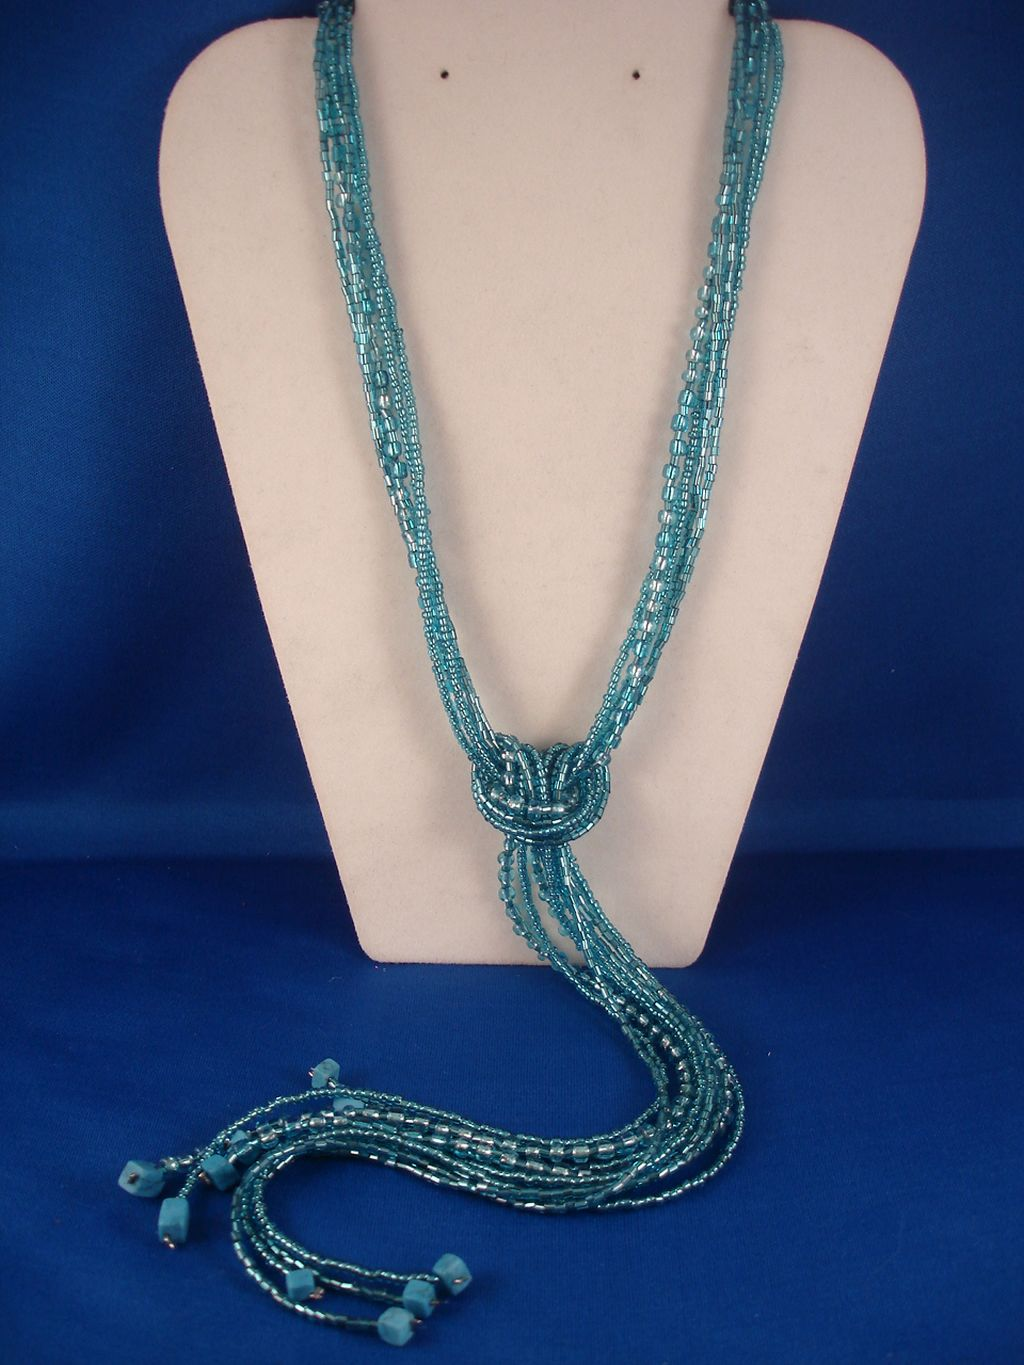 Turquoise Blue Beads & Genuine Stones Contemporary Knot Necklace